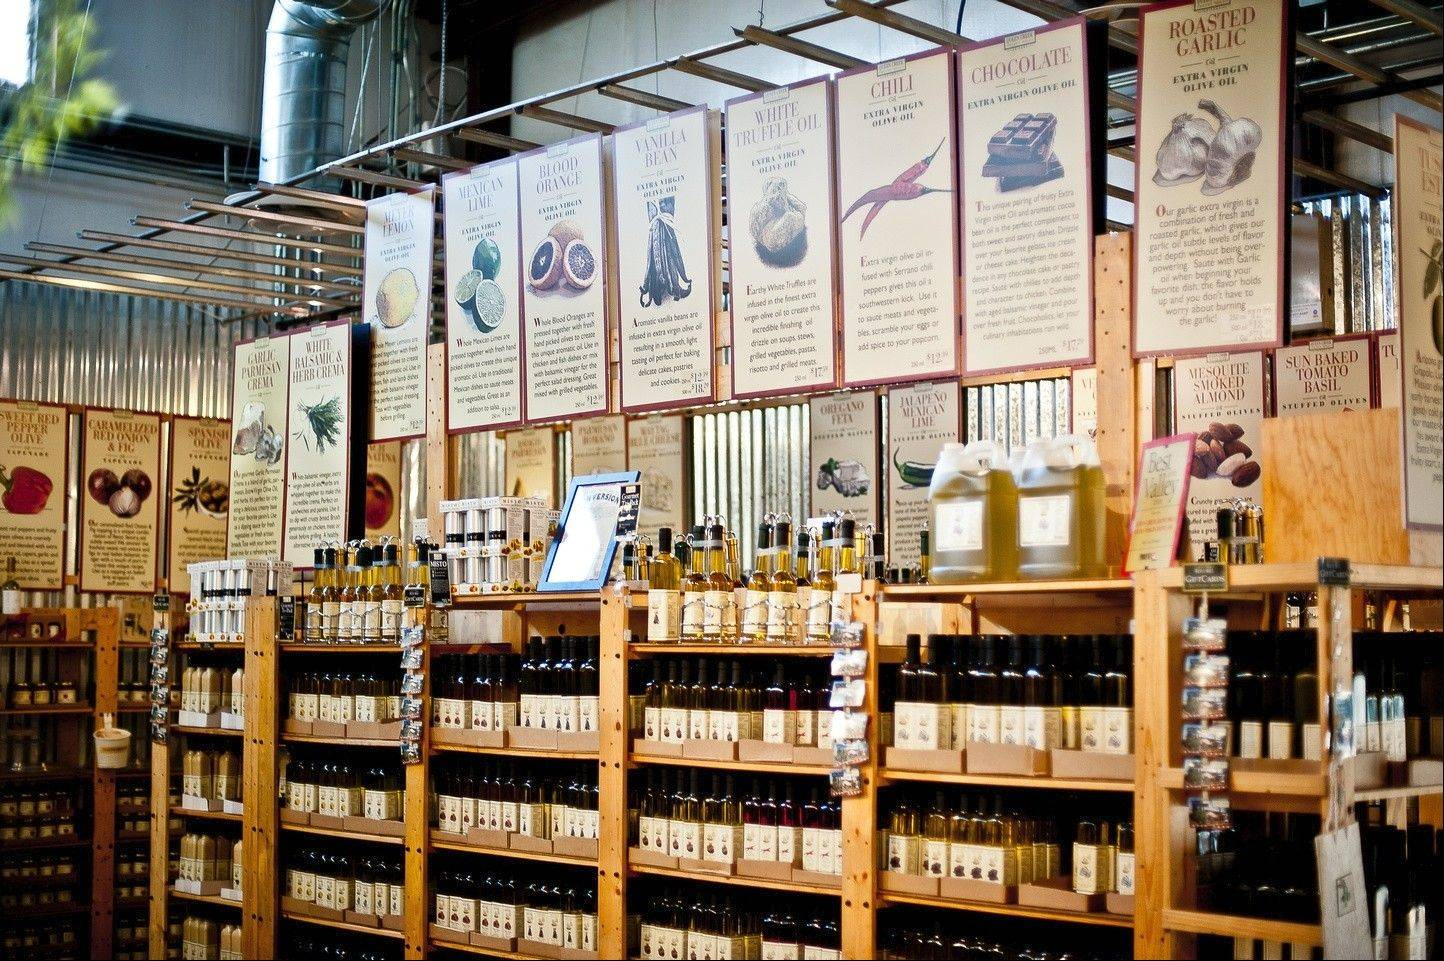 At Queen Creek Olive Mill in Mesa, Ariz., you can get a tour of the olive grove and free tasting of the oils produced at the mill.